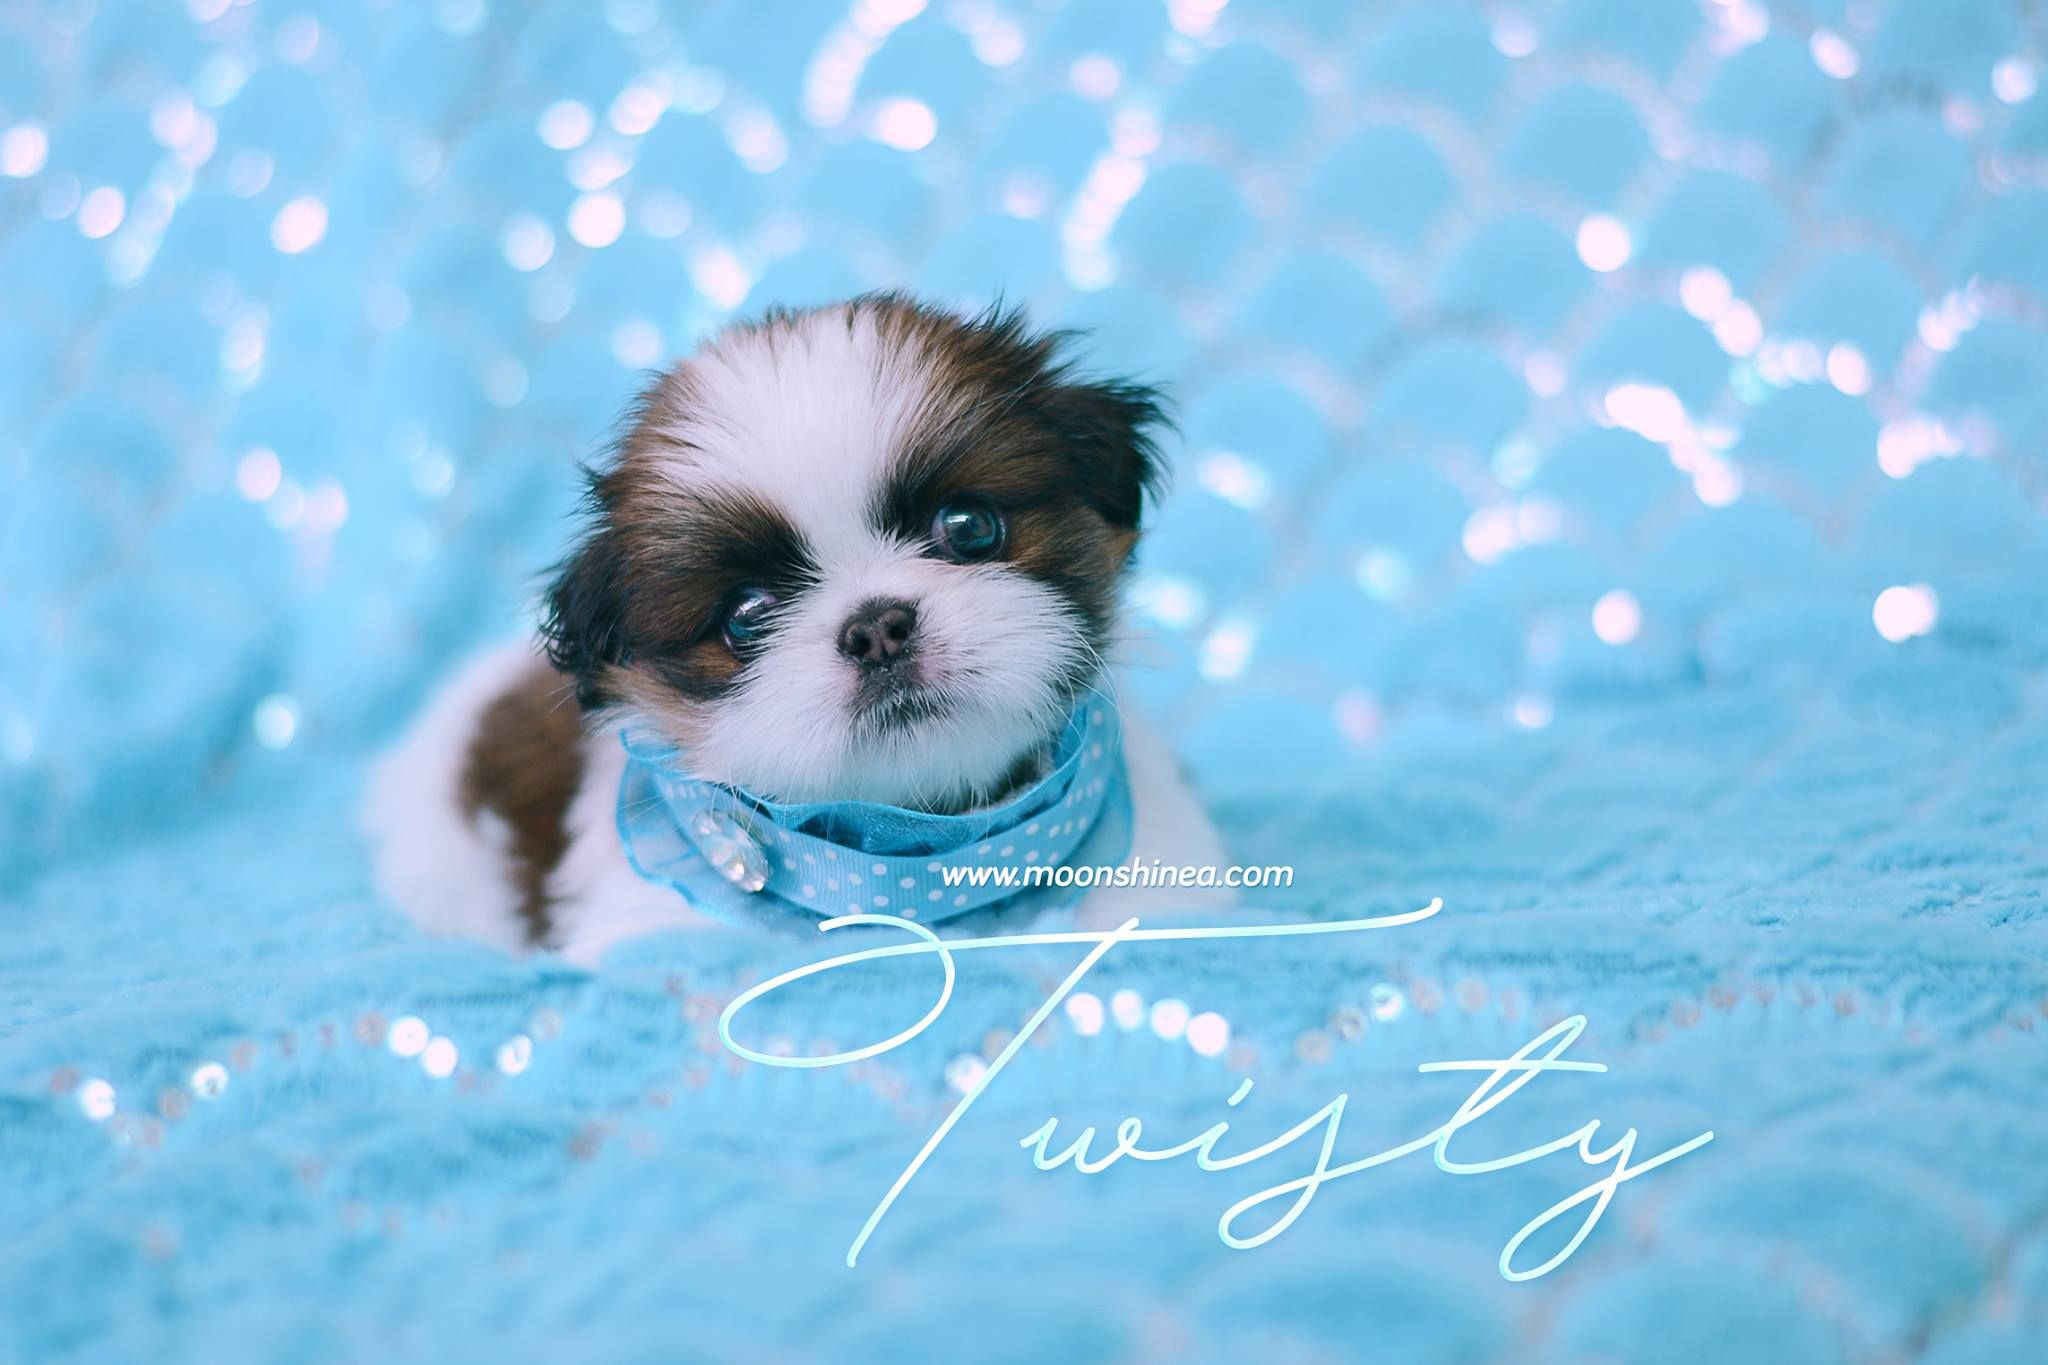 Www Moonshinea Com Shih Tzu Puppies Cute Puppies